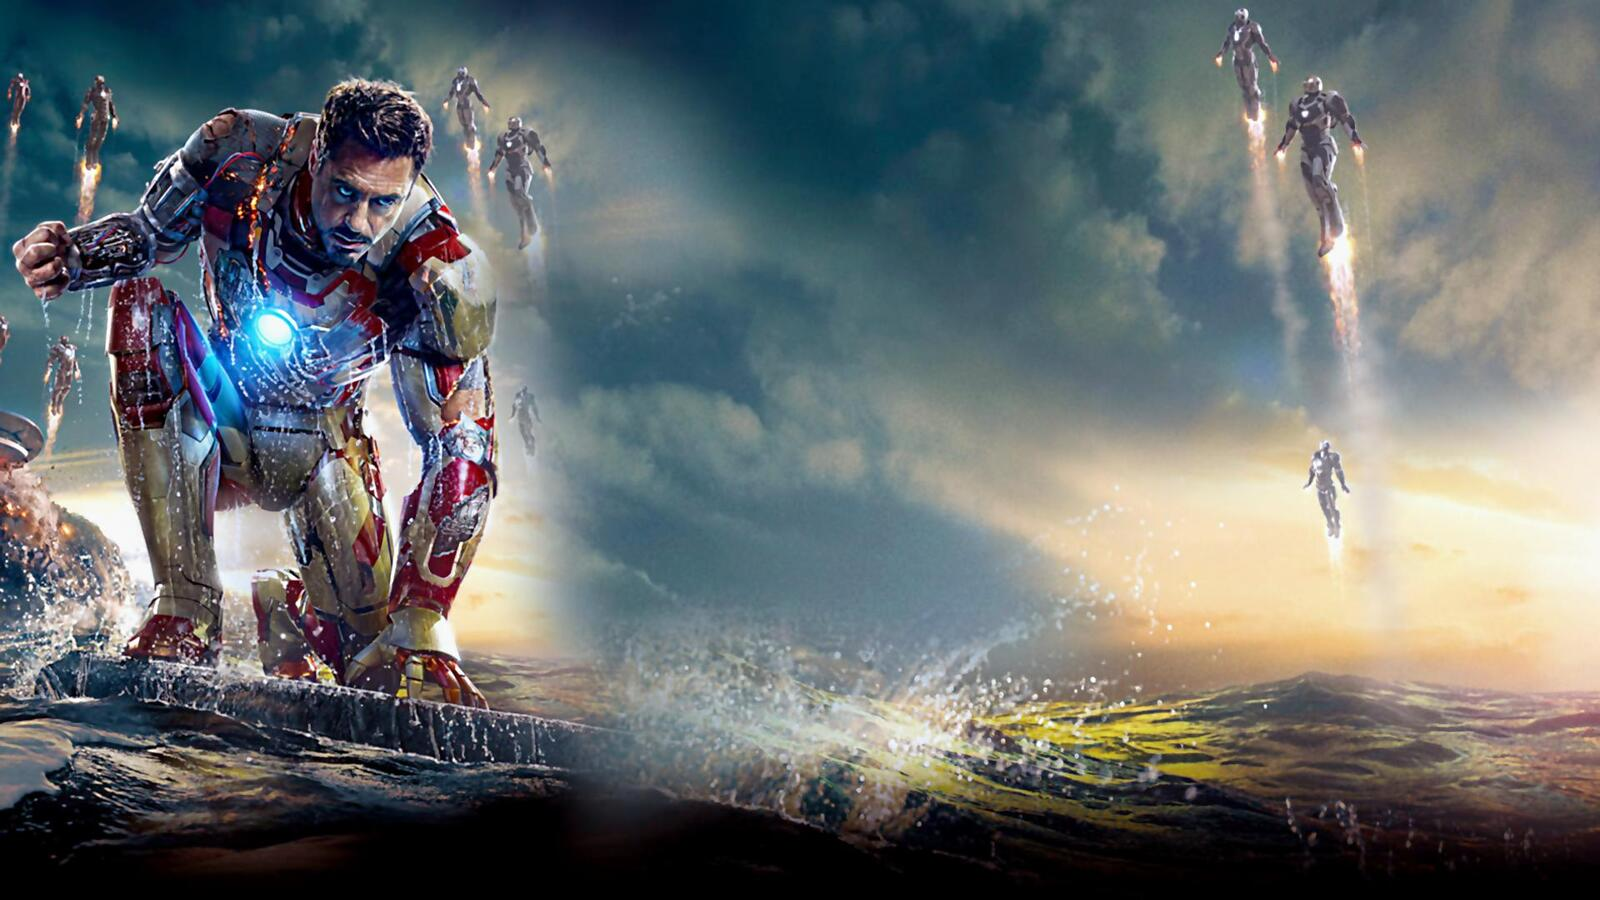 1600x900 Iron Man Hd 1600x900 Resolution Hd 4k Wallpapers Images